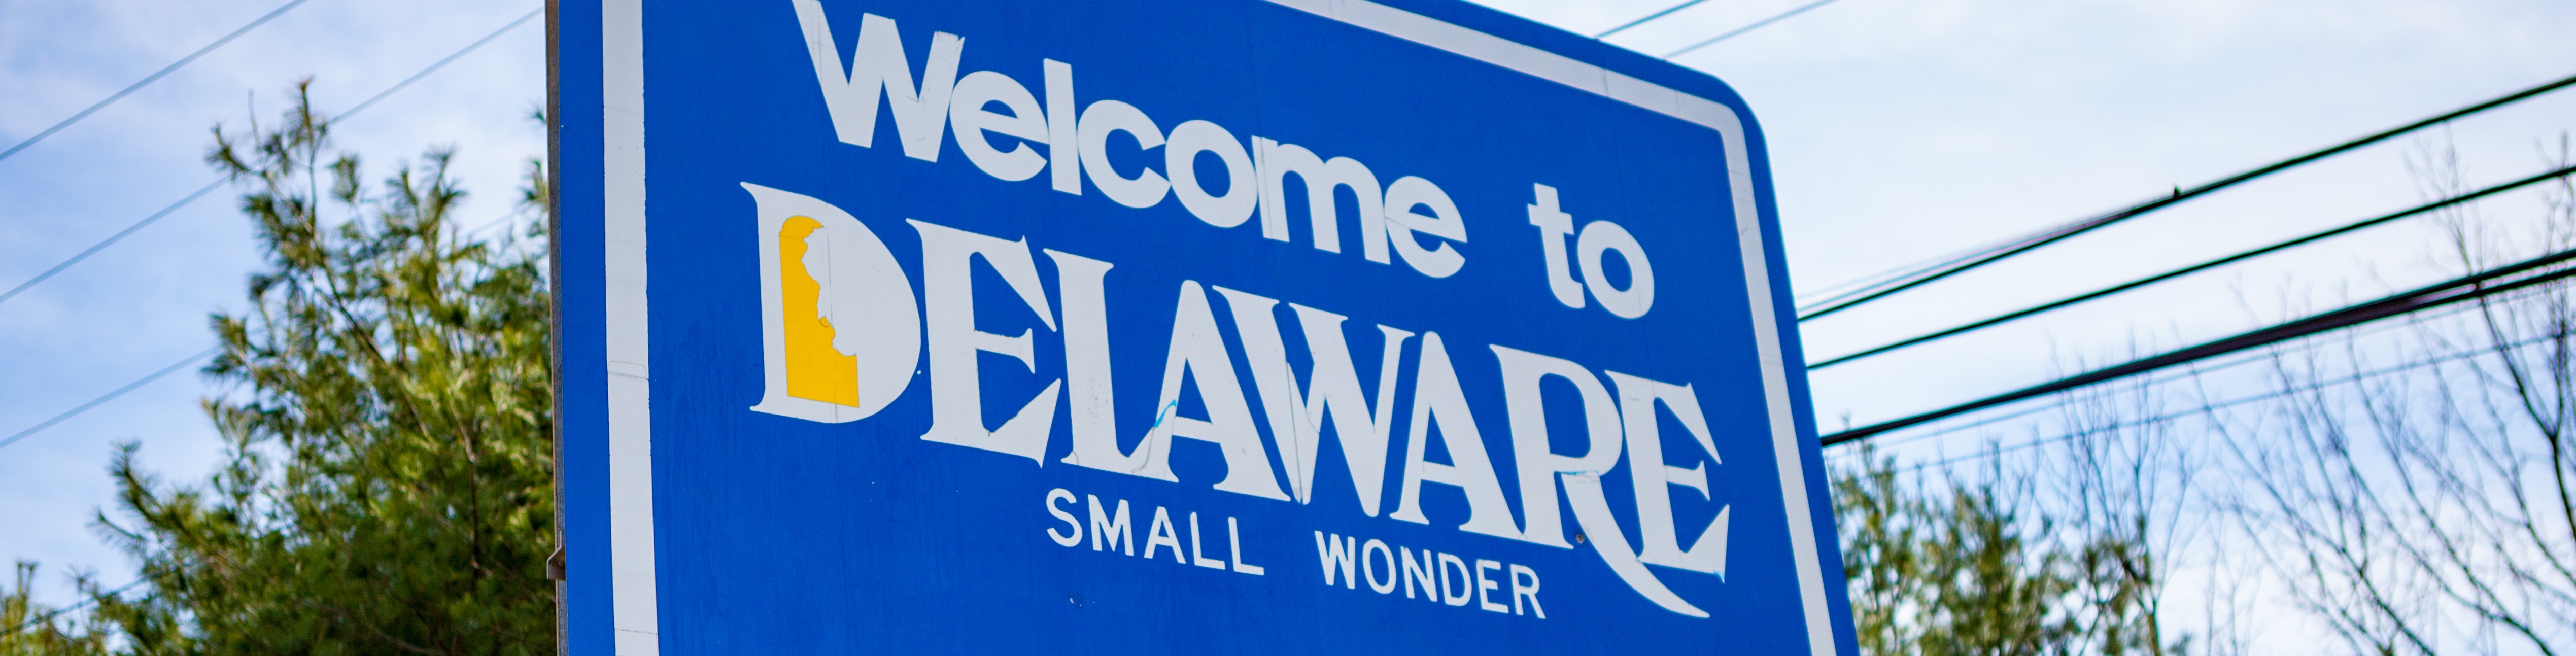 Welcome to Delaware (road sign)